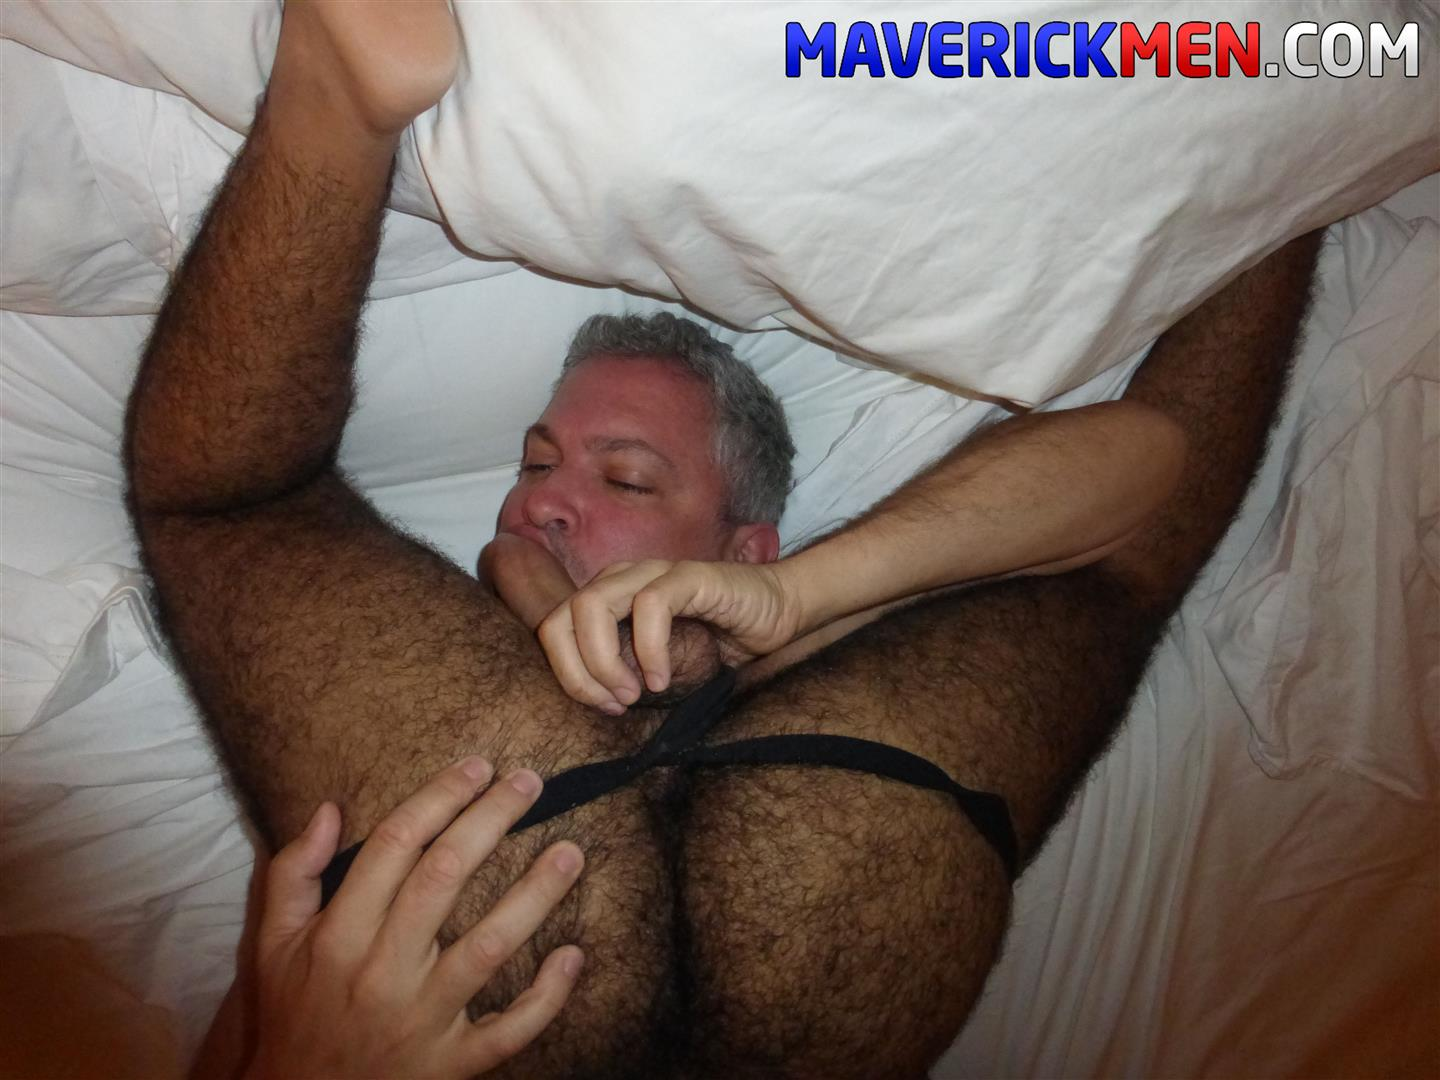 Maverick Men Little Wolf Hairy Ass Guy With A Big Uncut Cock Bareback Amateur Gay Porn 08 Breeding A Young Guy With A Hairy Ass And A Big Uncut Cock